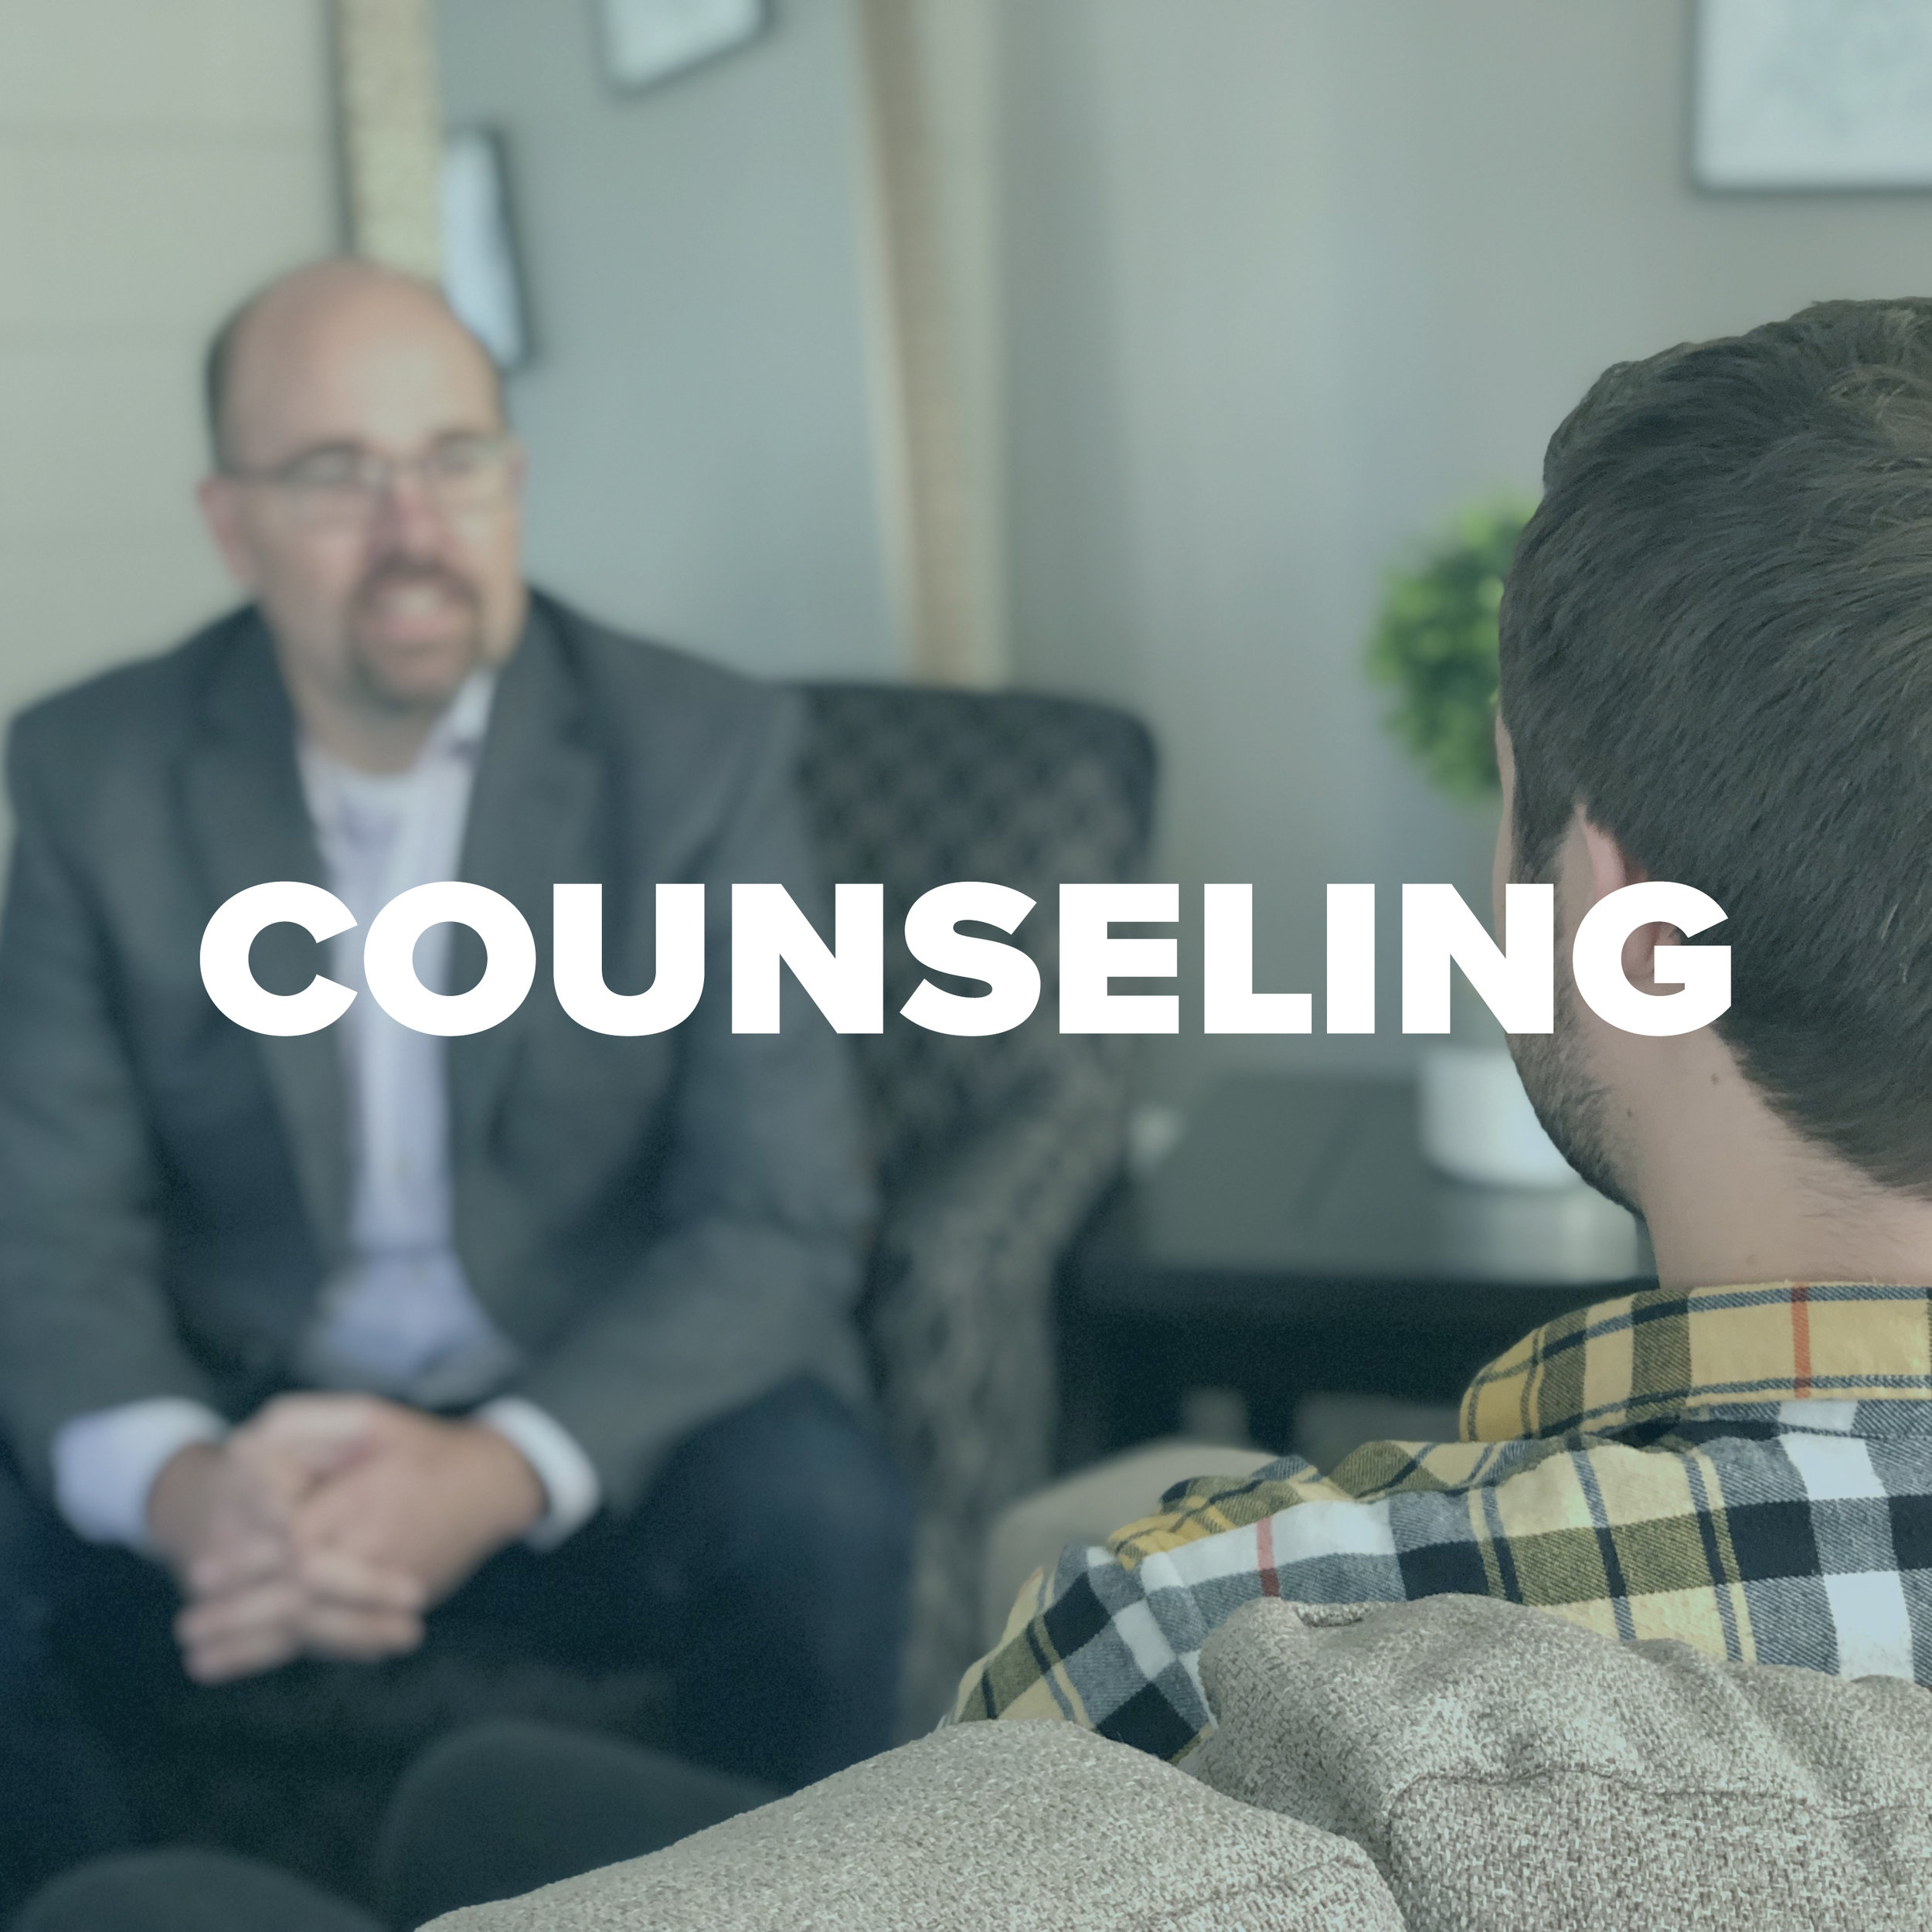 counseling.jpg